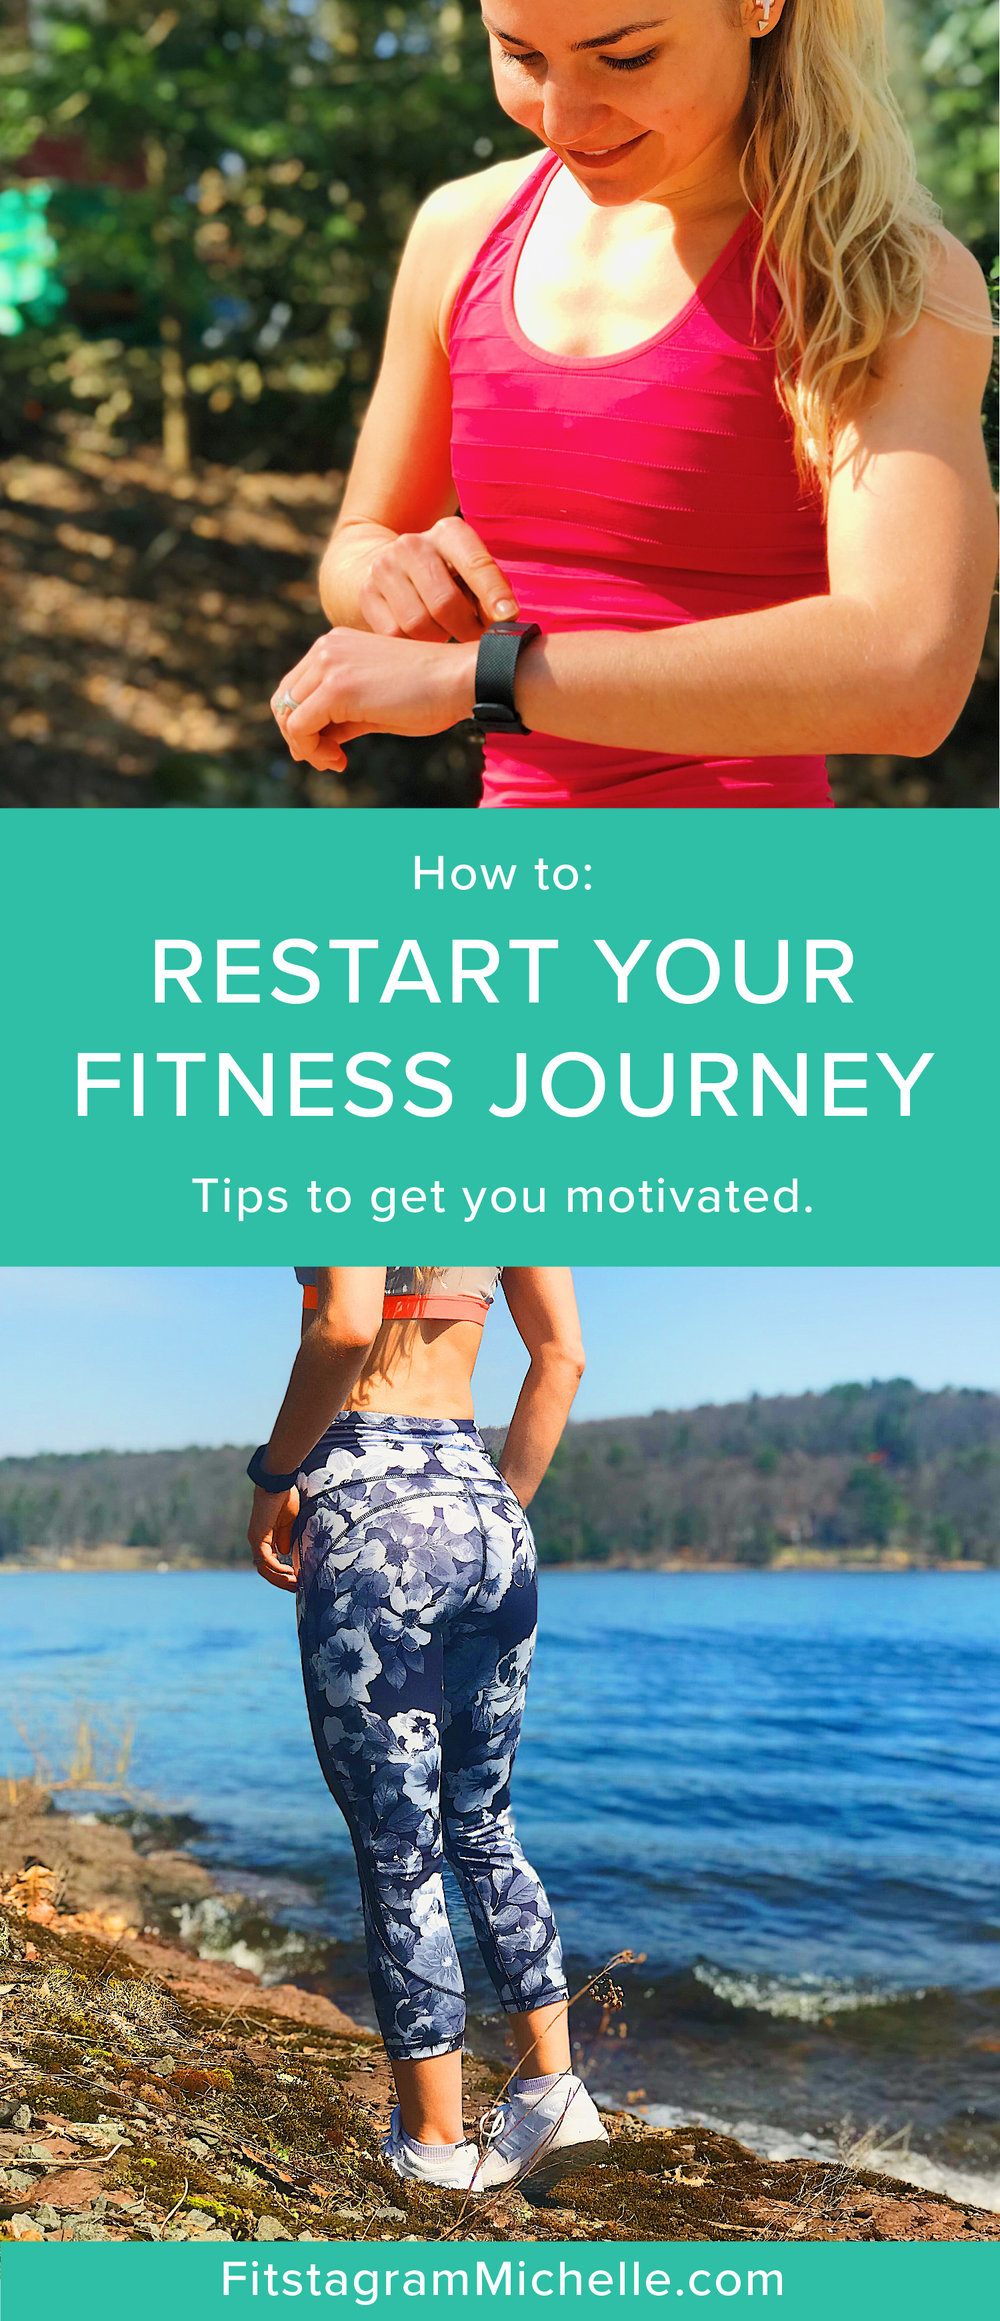 Fitstagram Michelle's tips for restarting (or starting) your fitness journey.. These are the top things to get your motivated and out of a slump. Get fit for the summer with these 6 things.